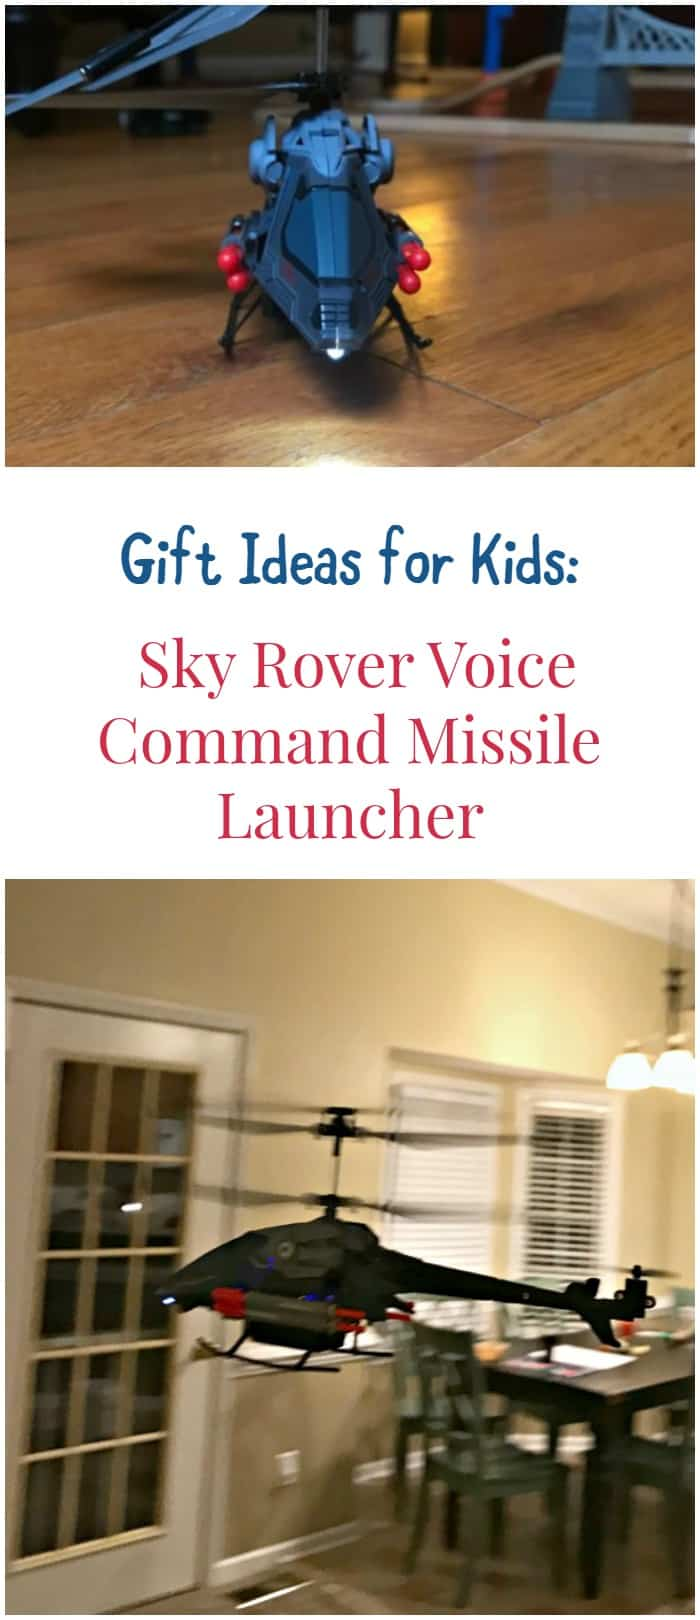 Looking for a fun gift idea for kids? Let their imaginations take flight with the  Sky Rover Voice Command Missile Launcher!